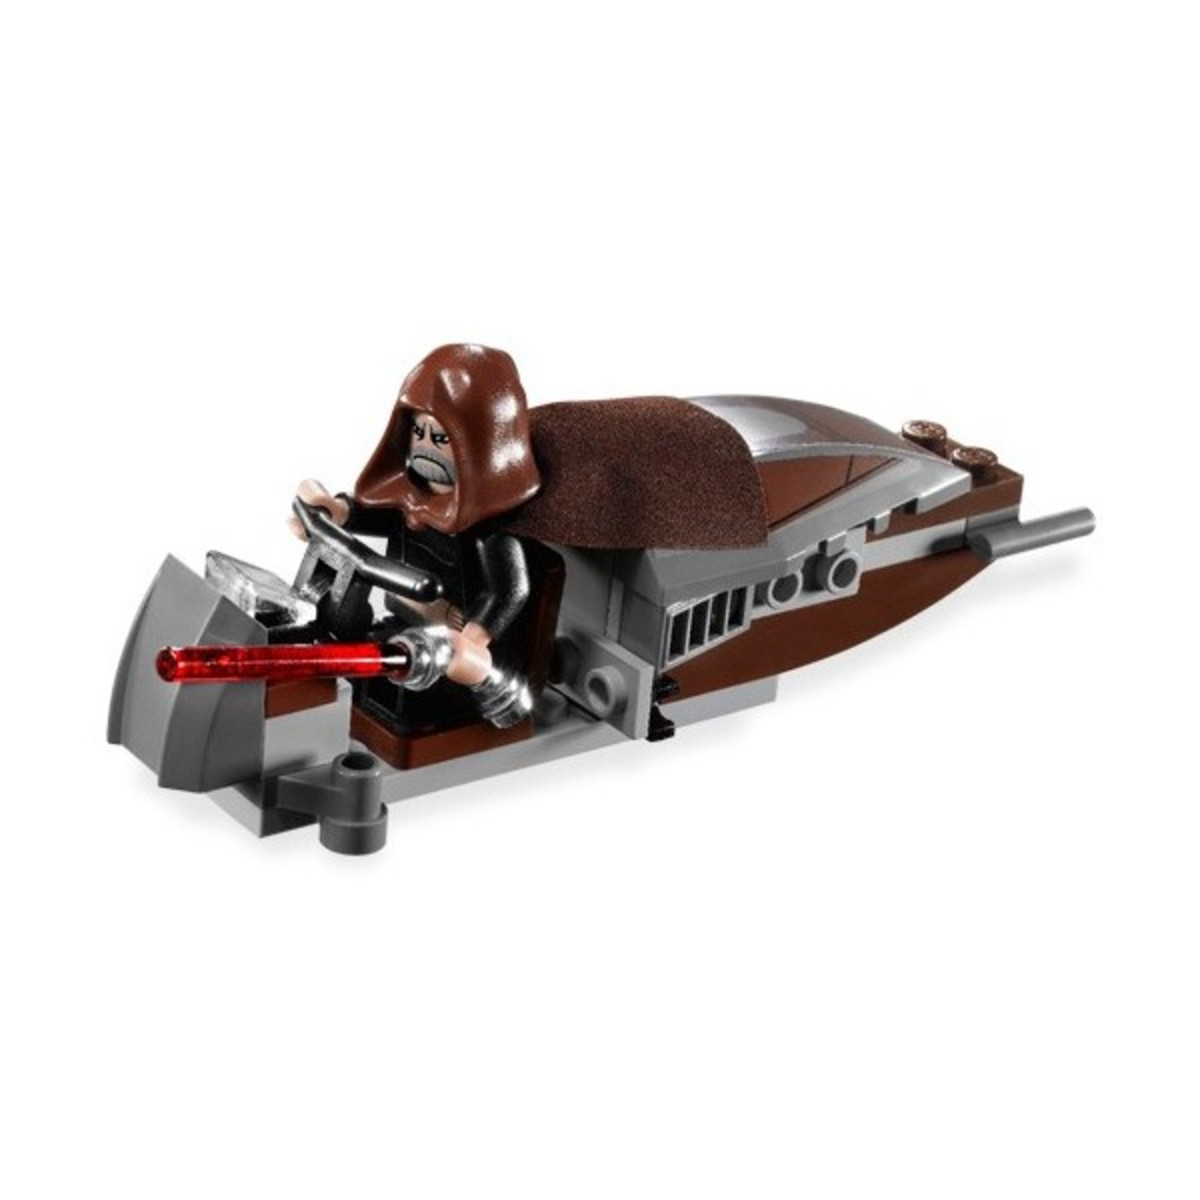 LEGO Star Wars Count Dooku's Solar Sailer 7752 Speeder